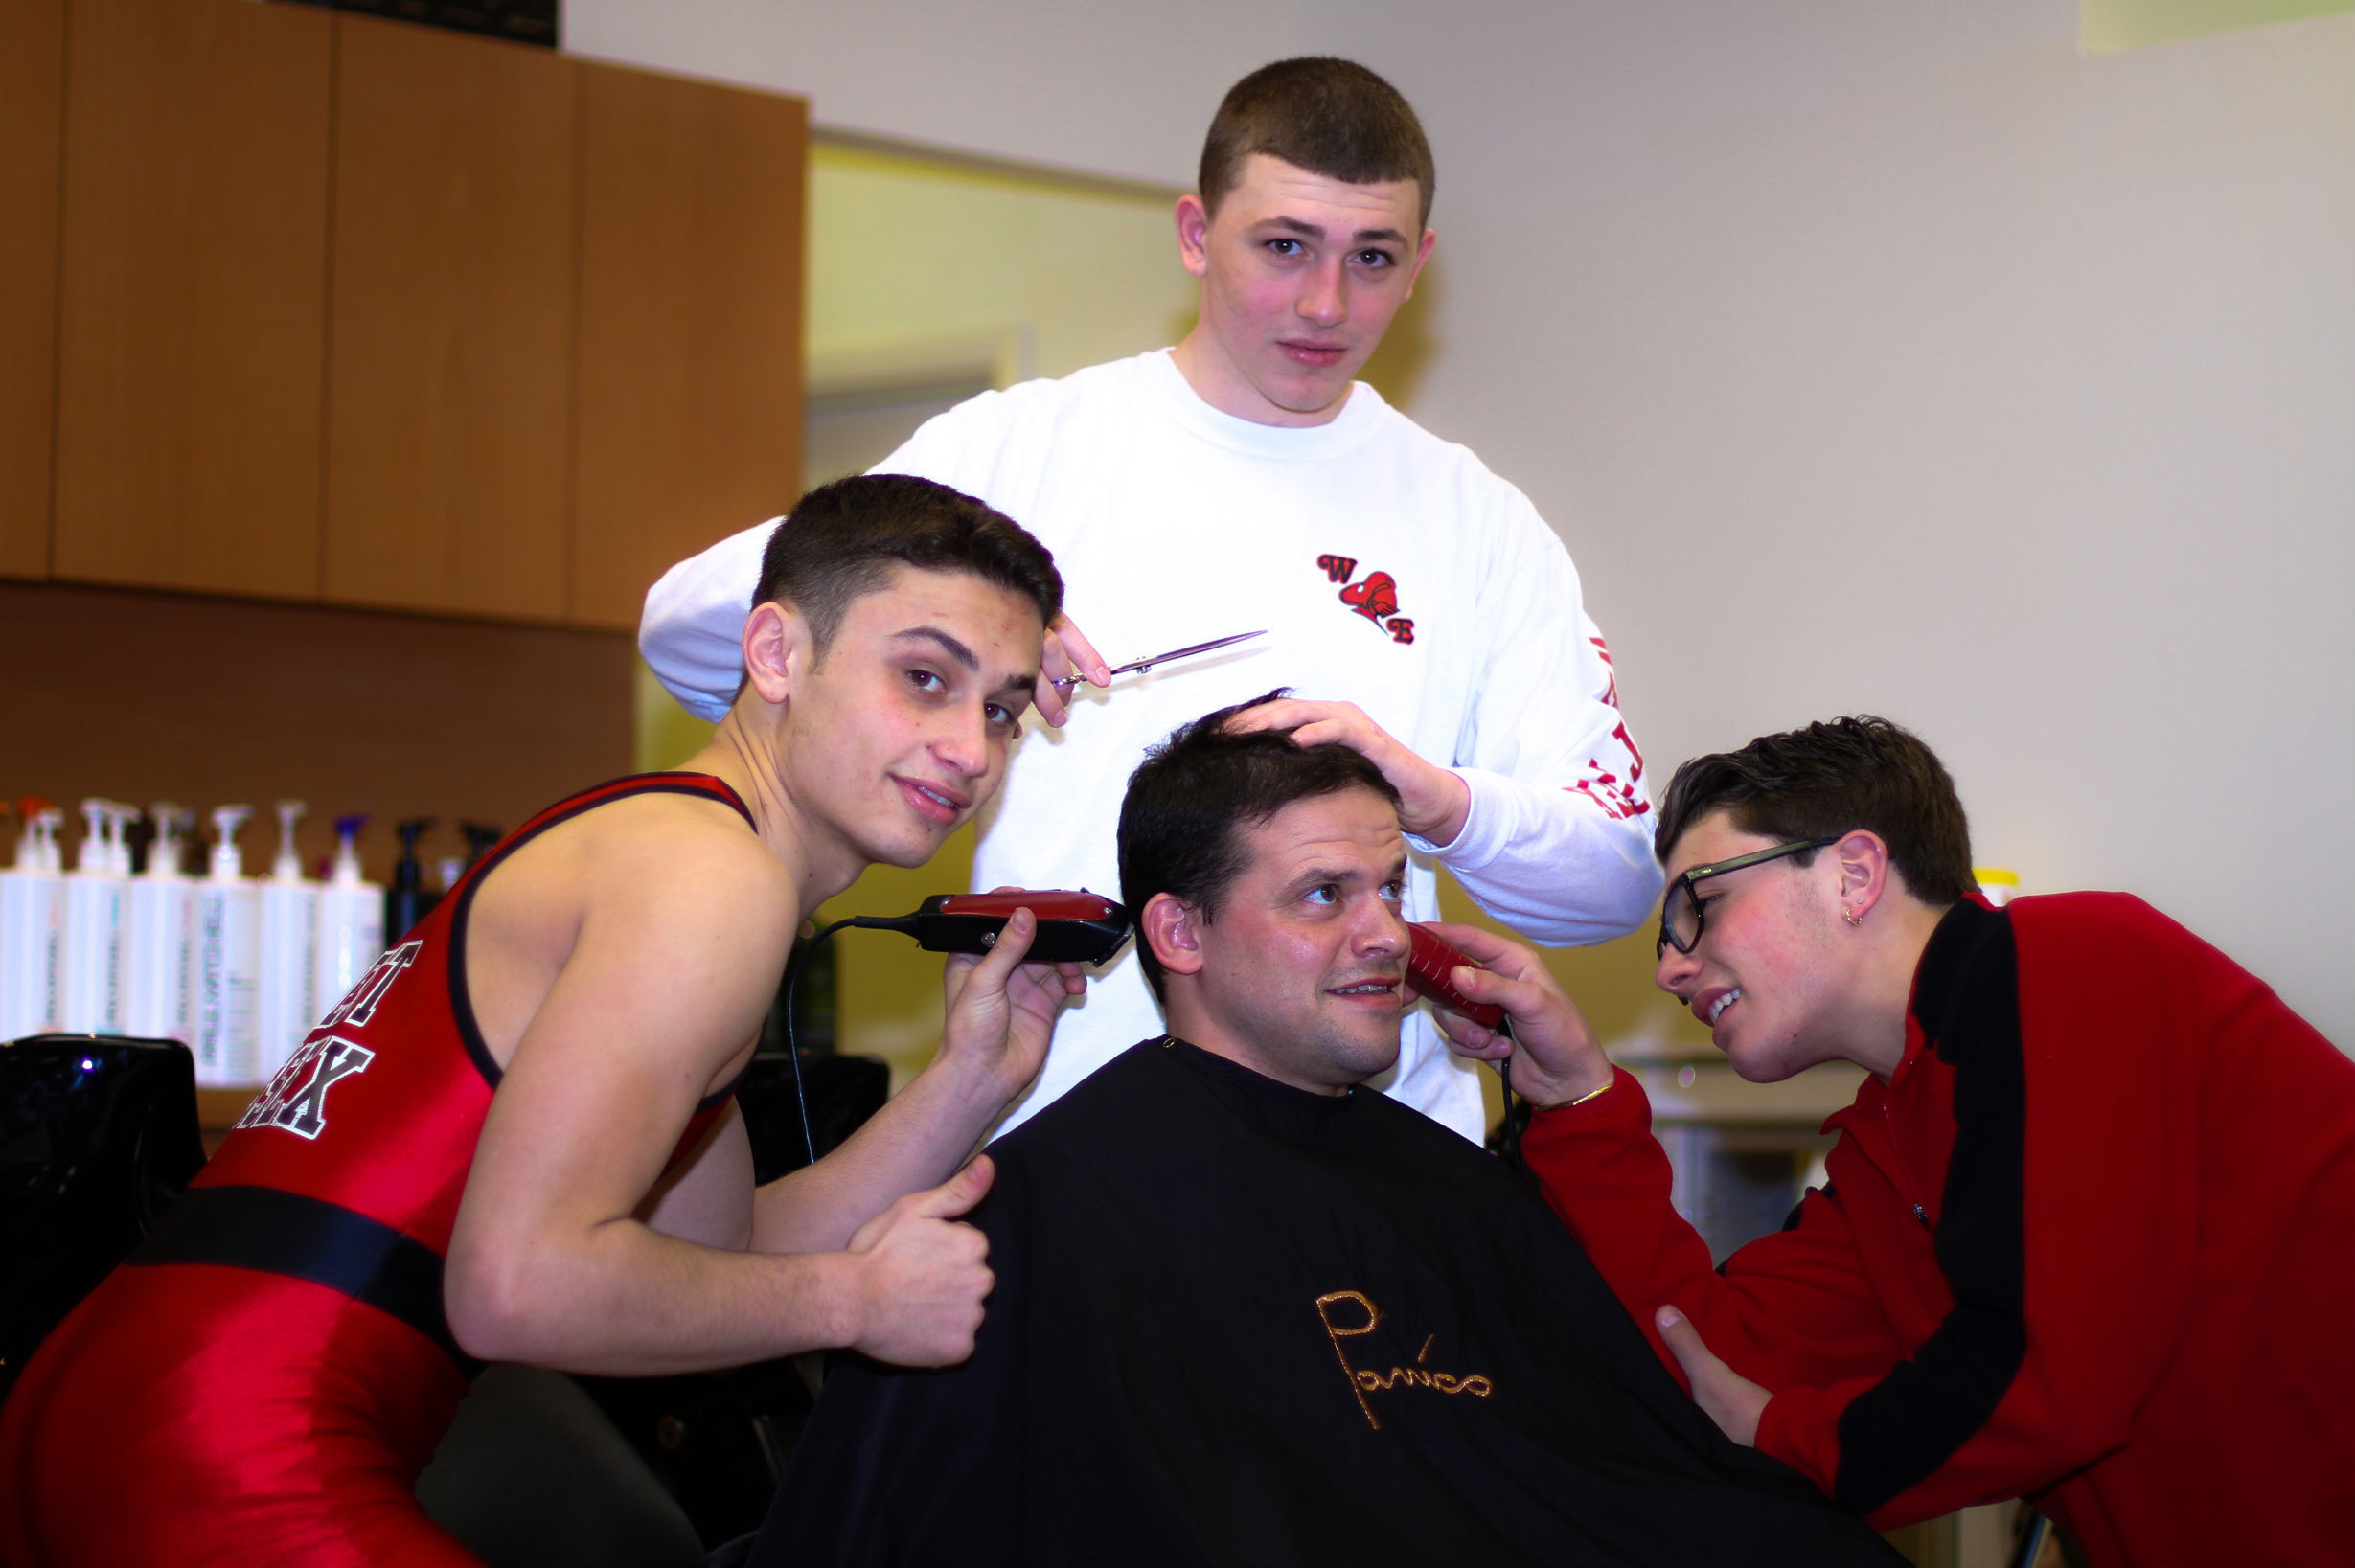 West Essex Project Graduation and Wrestling Booster Club Cut-a-thon